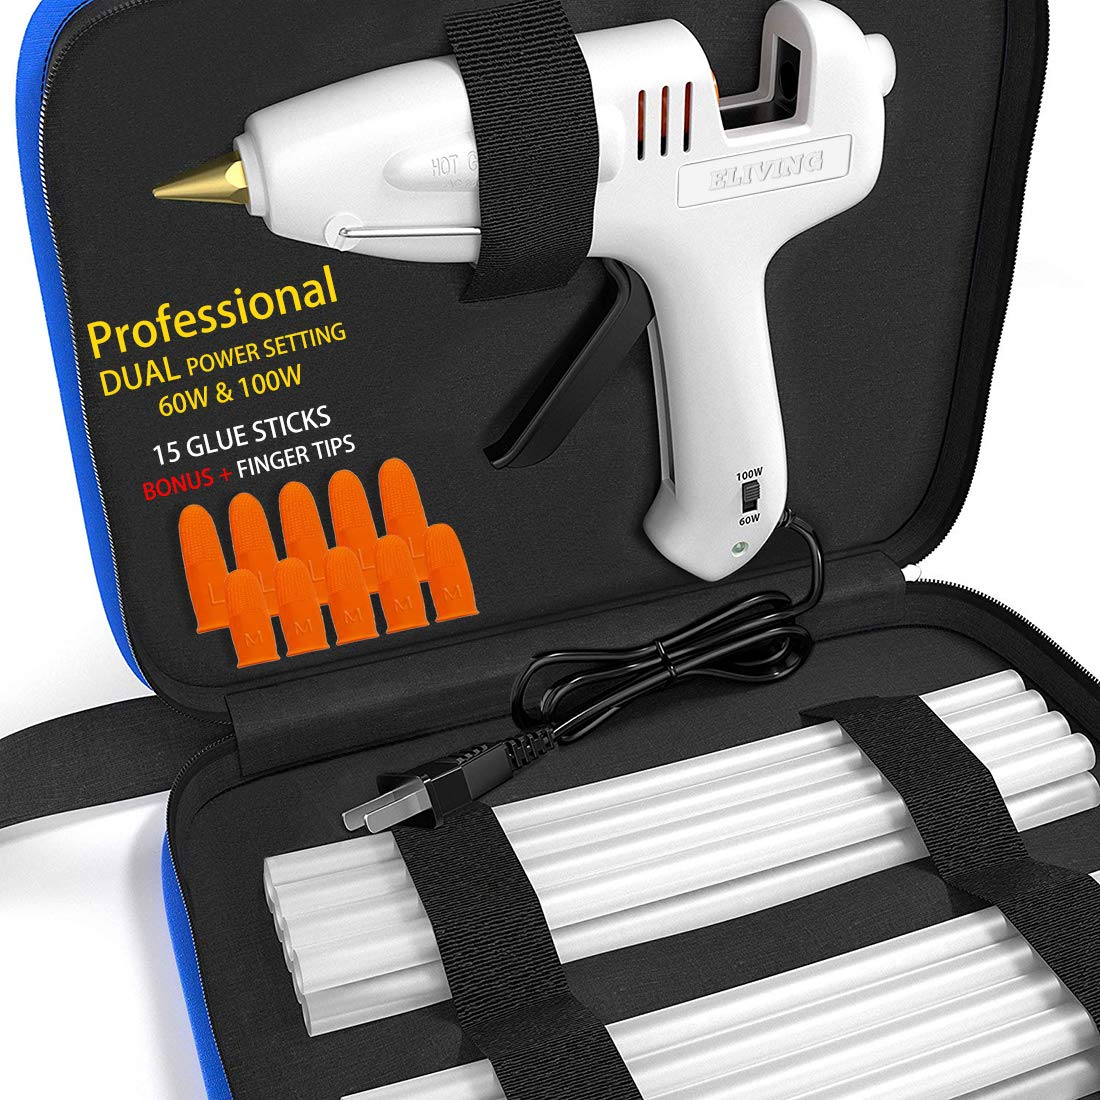 Hot Glue Gun Kit with Glue Sticks Full Size 15 Pcs, Portable Case for DIY Small Projects, Heavy Duty, Craft and Arts & Home or Industrail Quick Repair Sealing, Christmas Decoration/Gift - Dual Temp